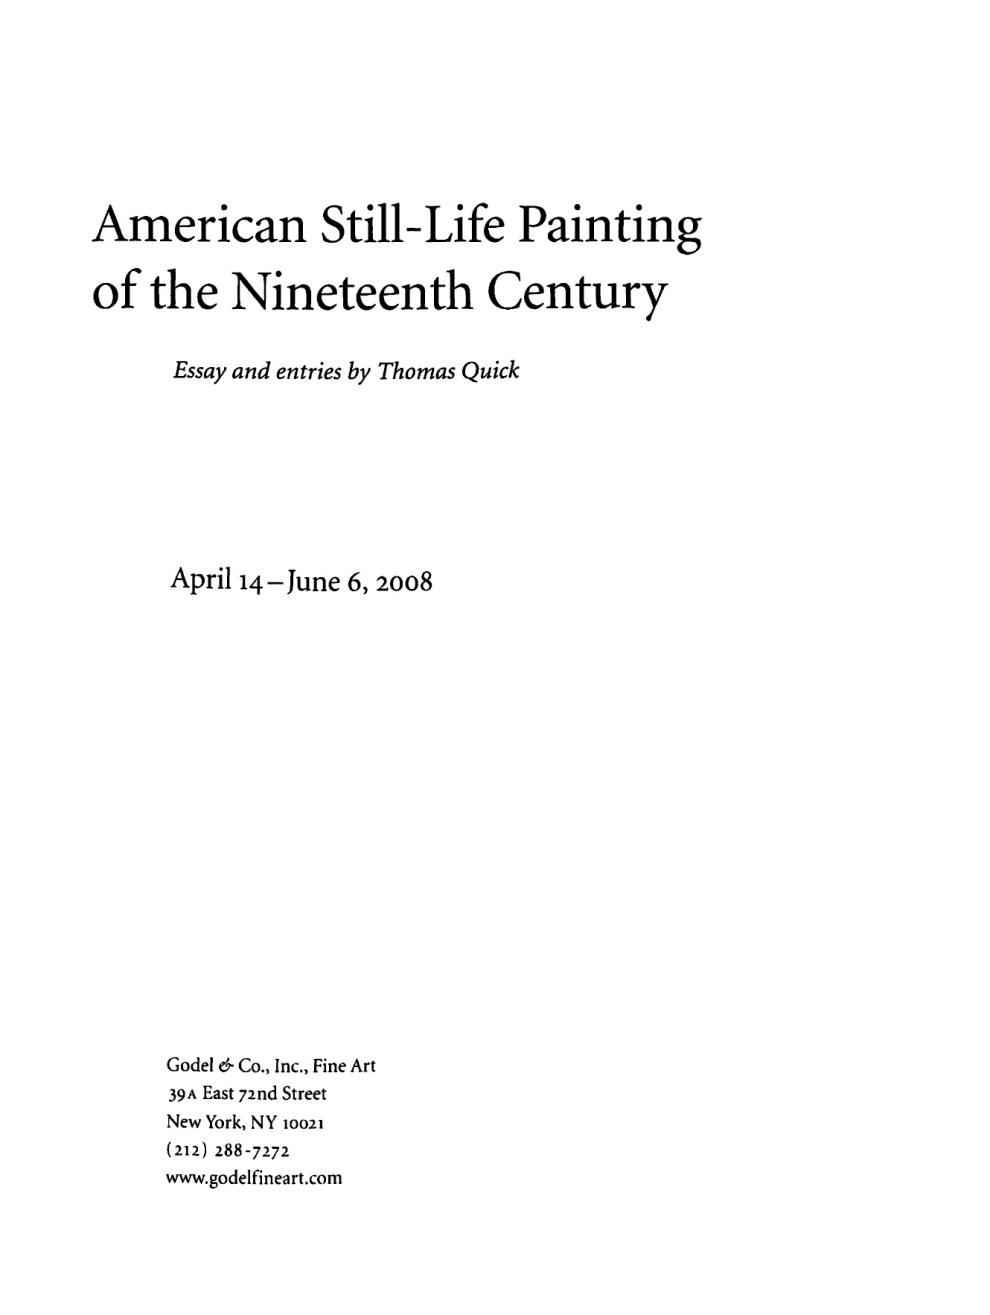 "2008 Godel & Co, Inc., New York, NY, ""American Still-Life Painting of the Nineteenth Century"", April 14 – June 6"